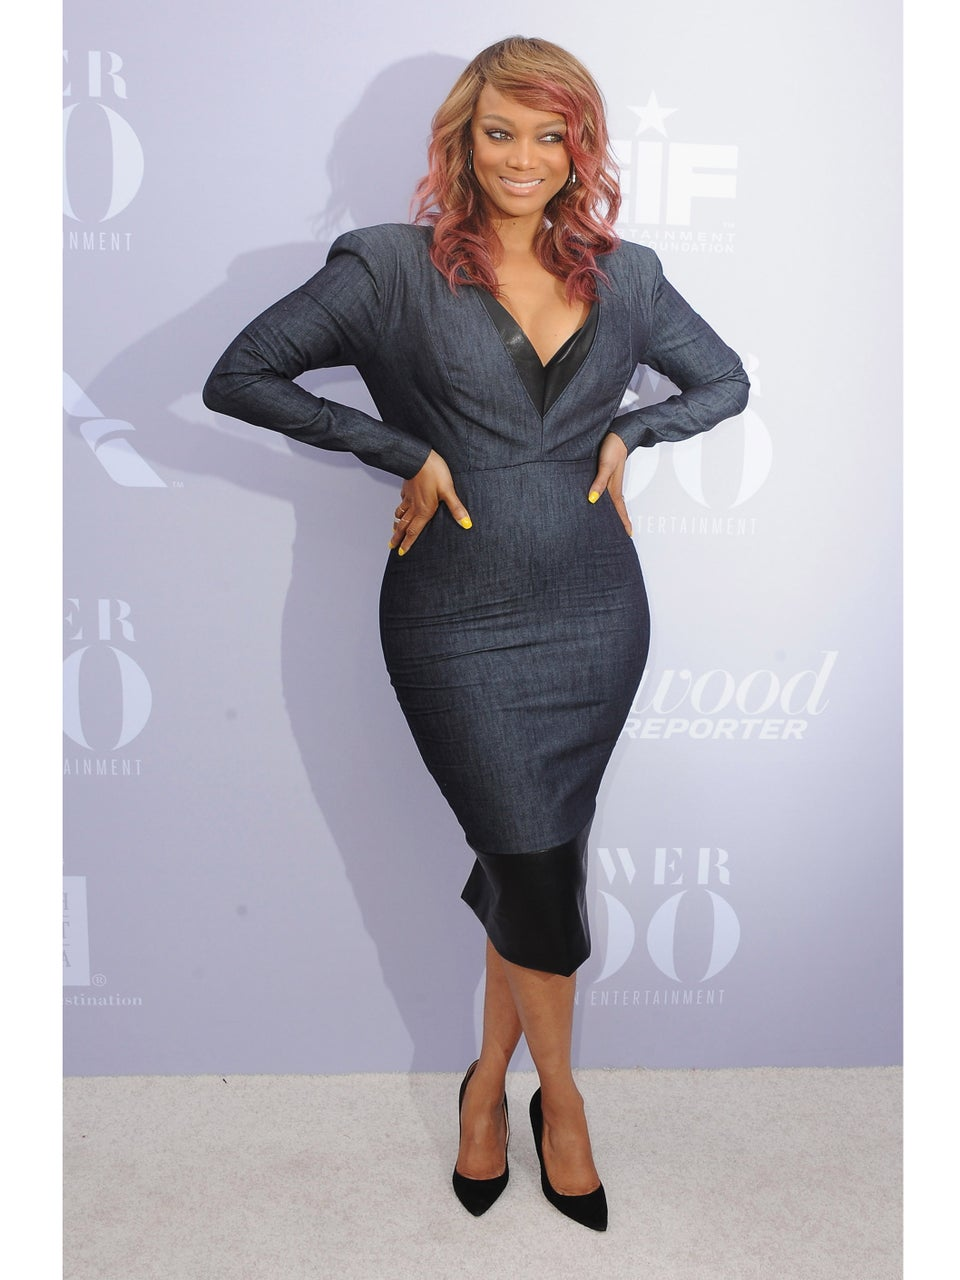 Tyra Banks and 'America's Next Top Model' Reportedly Headed to Vh1